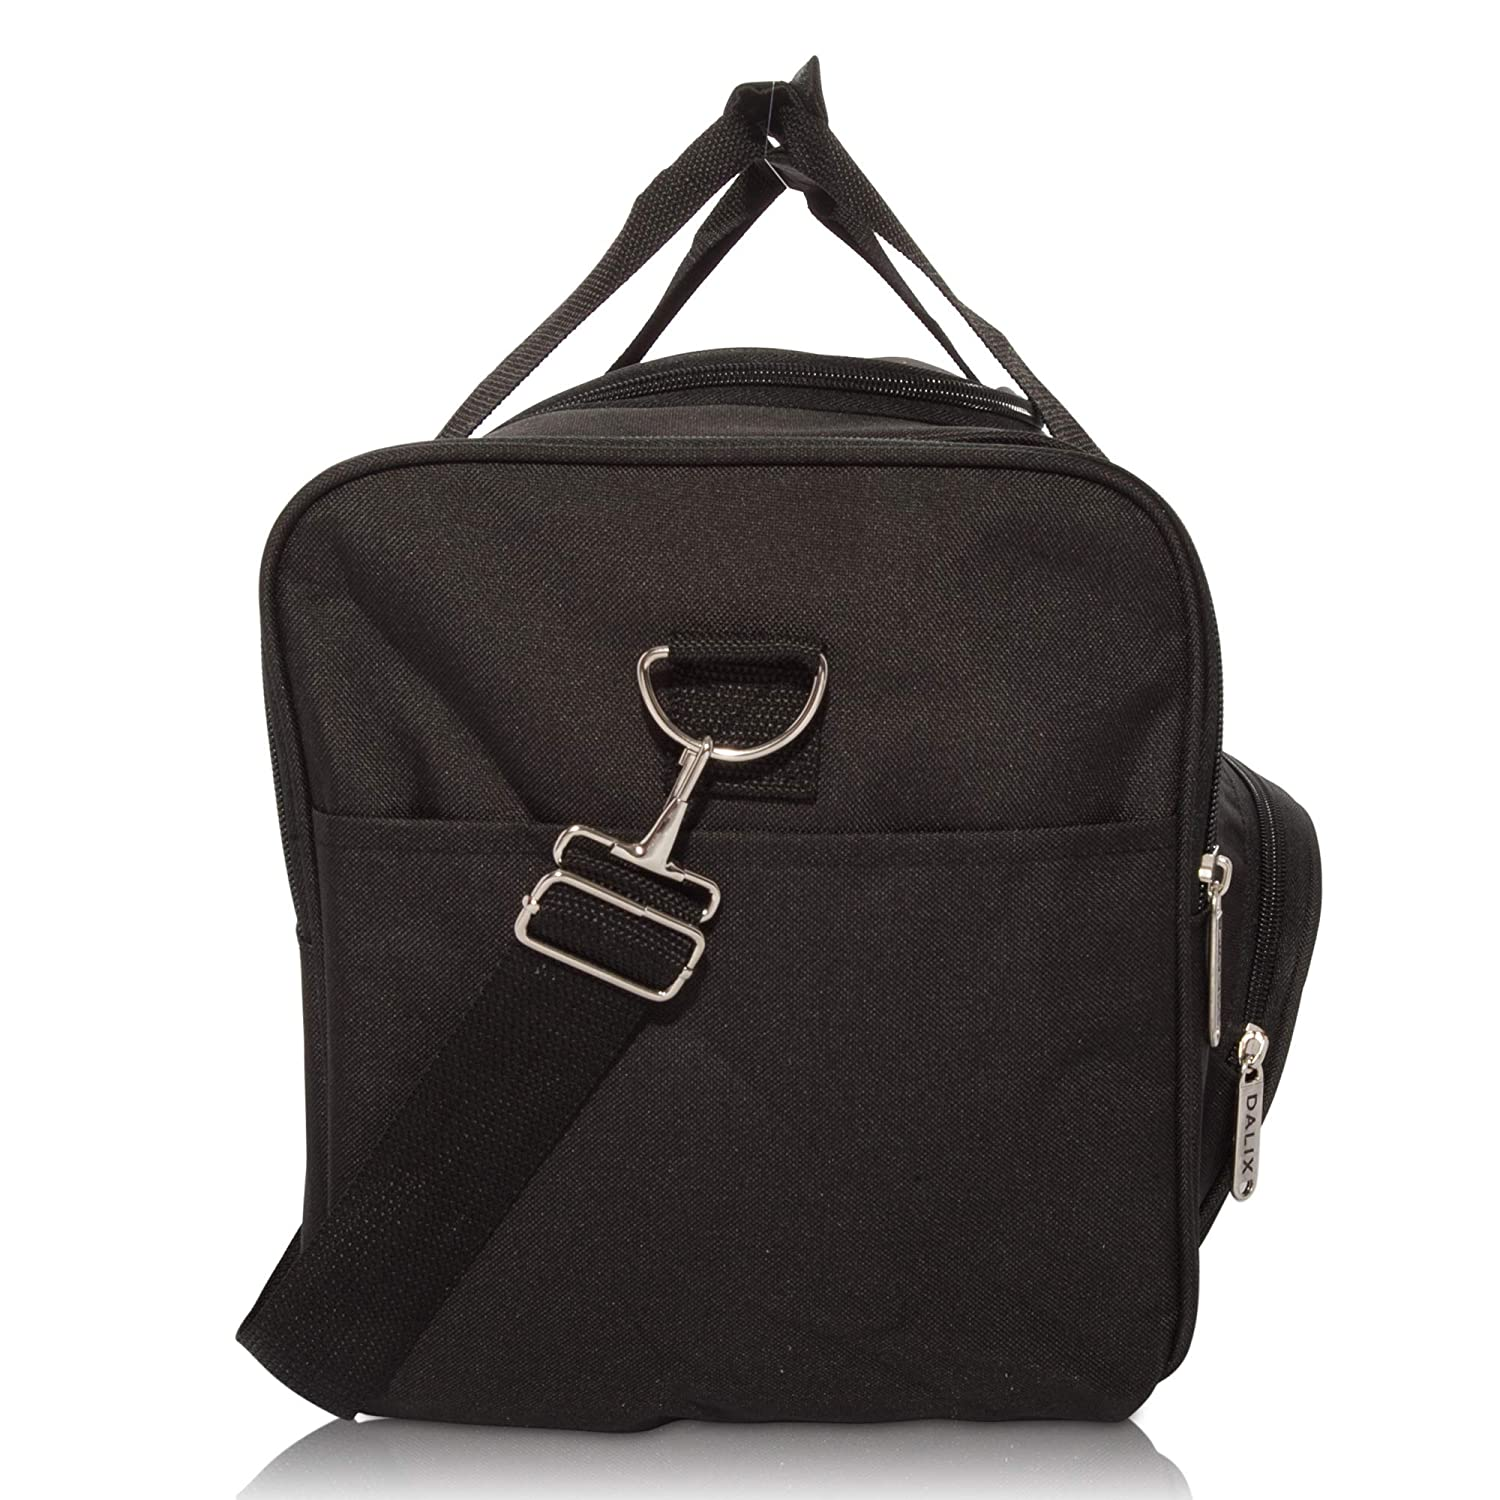 a2a583f5b5 Amazon.com  DALIX Signature Travel or Gym Duffle Bag in Black  Sports    Outdoors